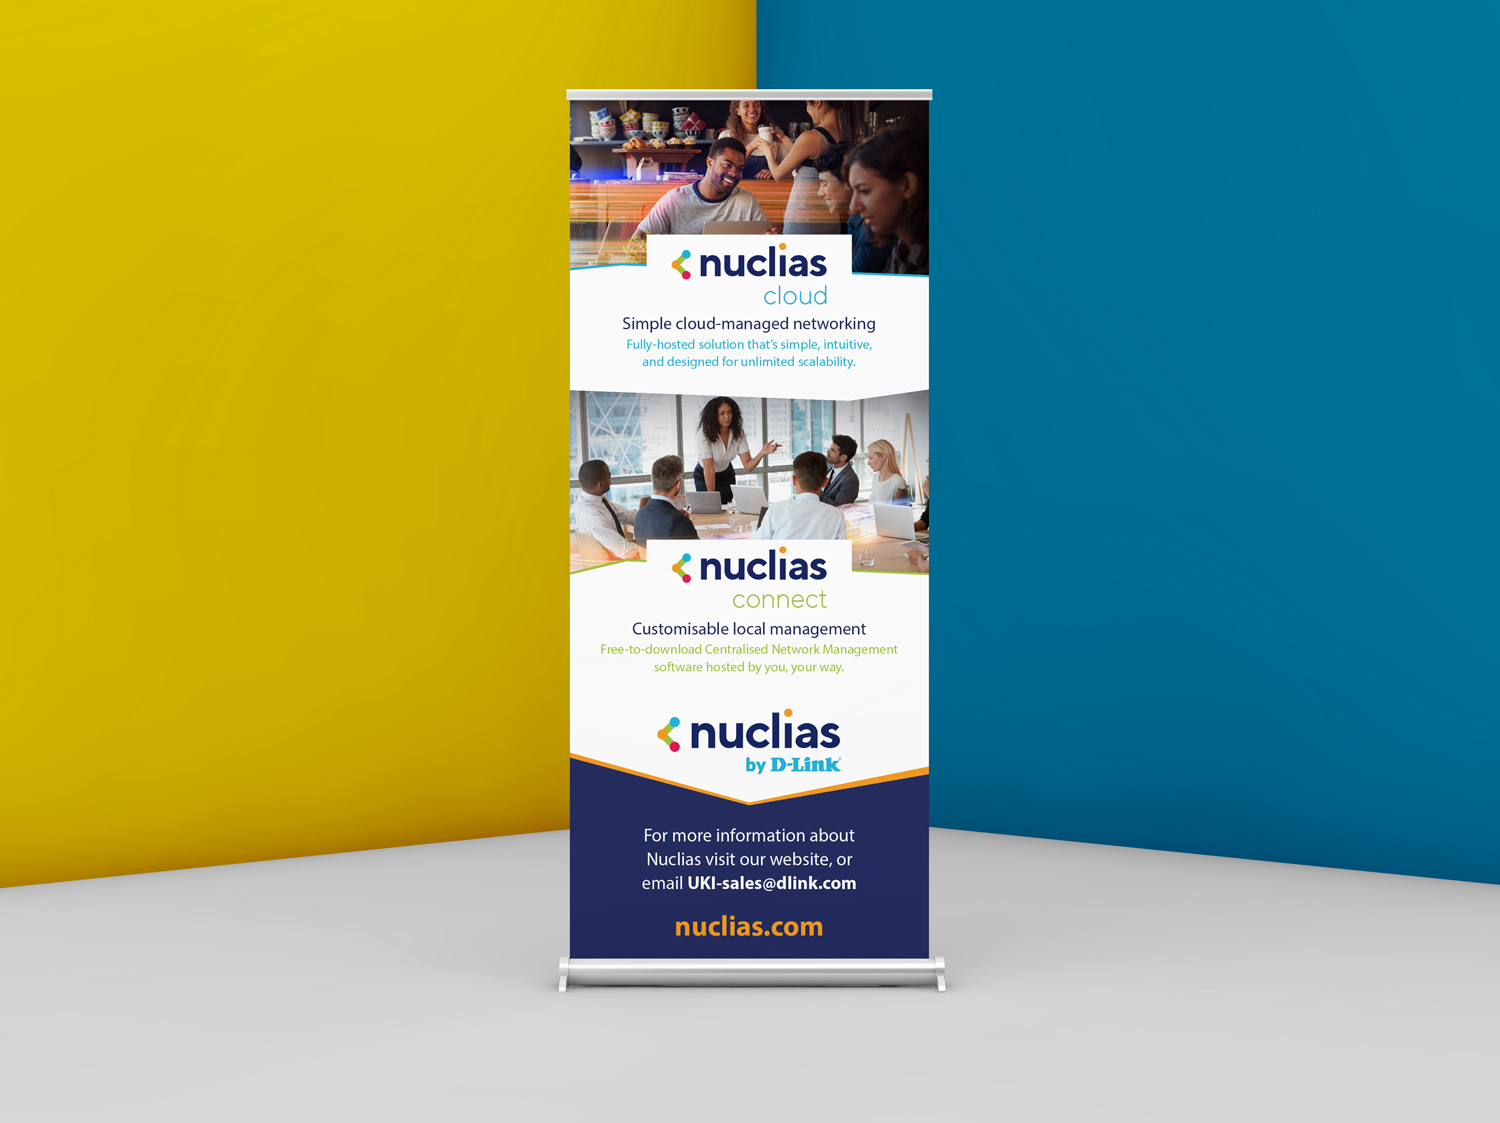 Pull Up Exhibition Banner for Nuclias D-Link